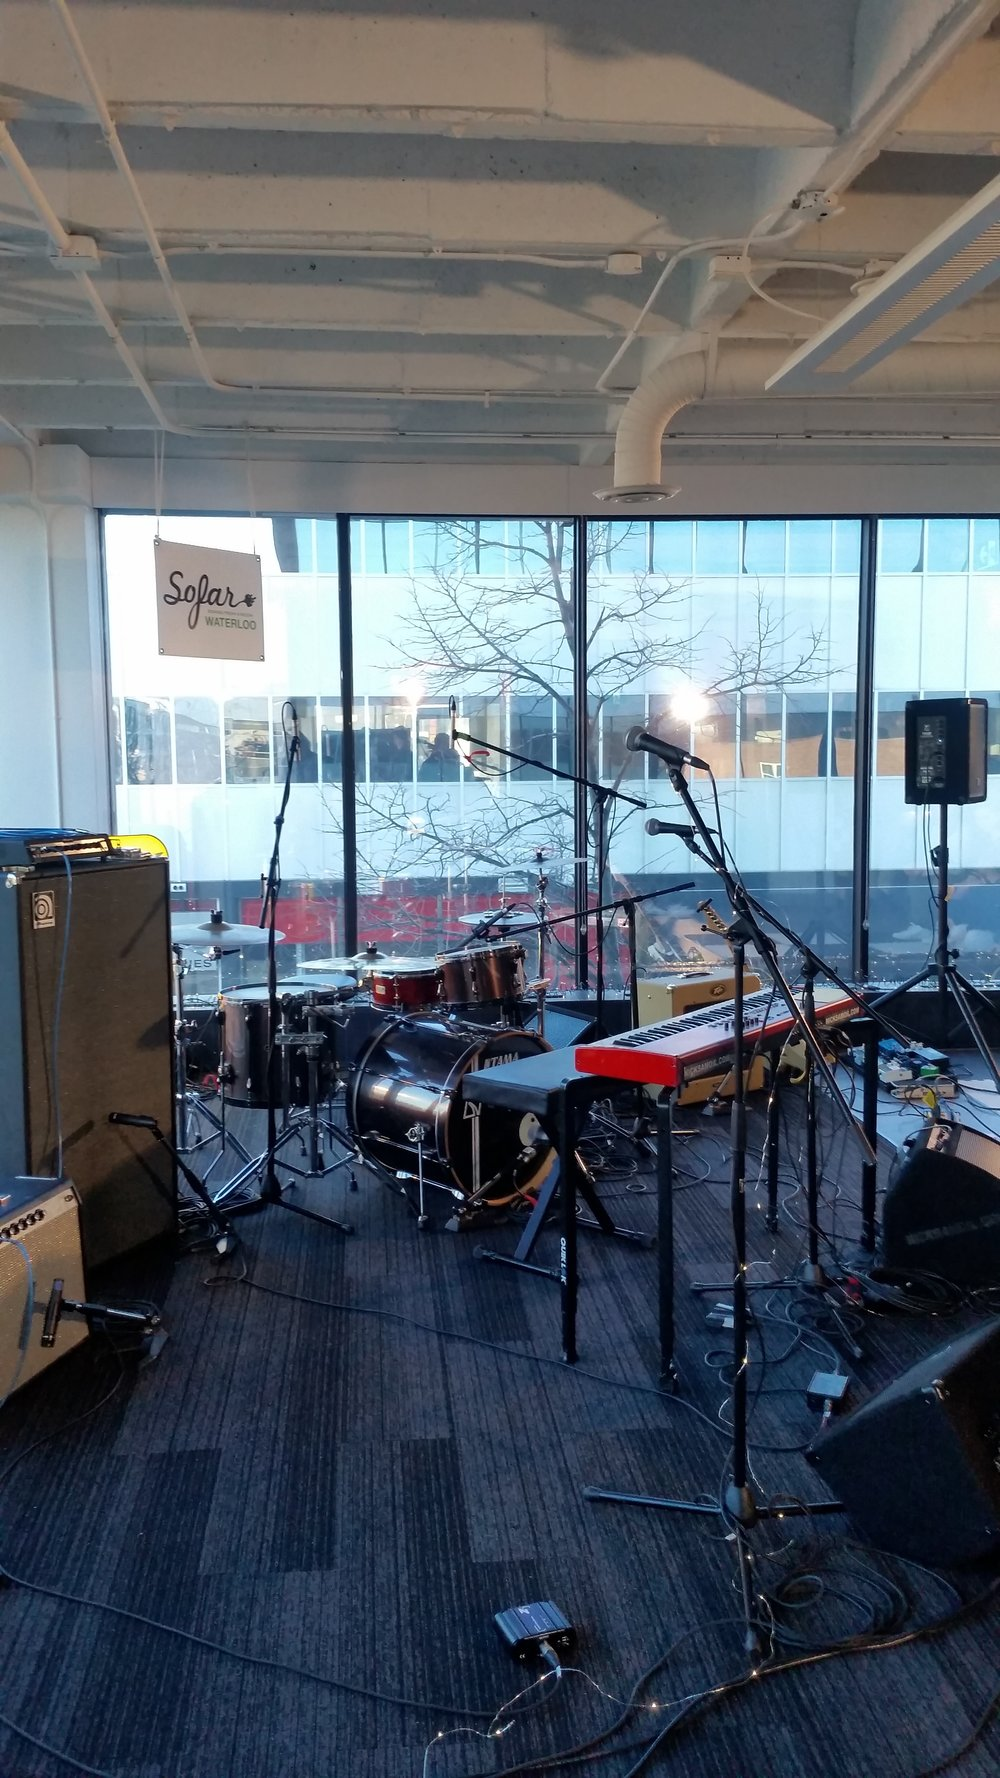 Stage setup. Sofar Waterloo at Smile.io. March 25th, 2018